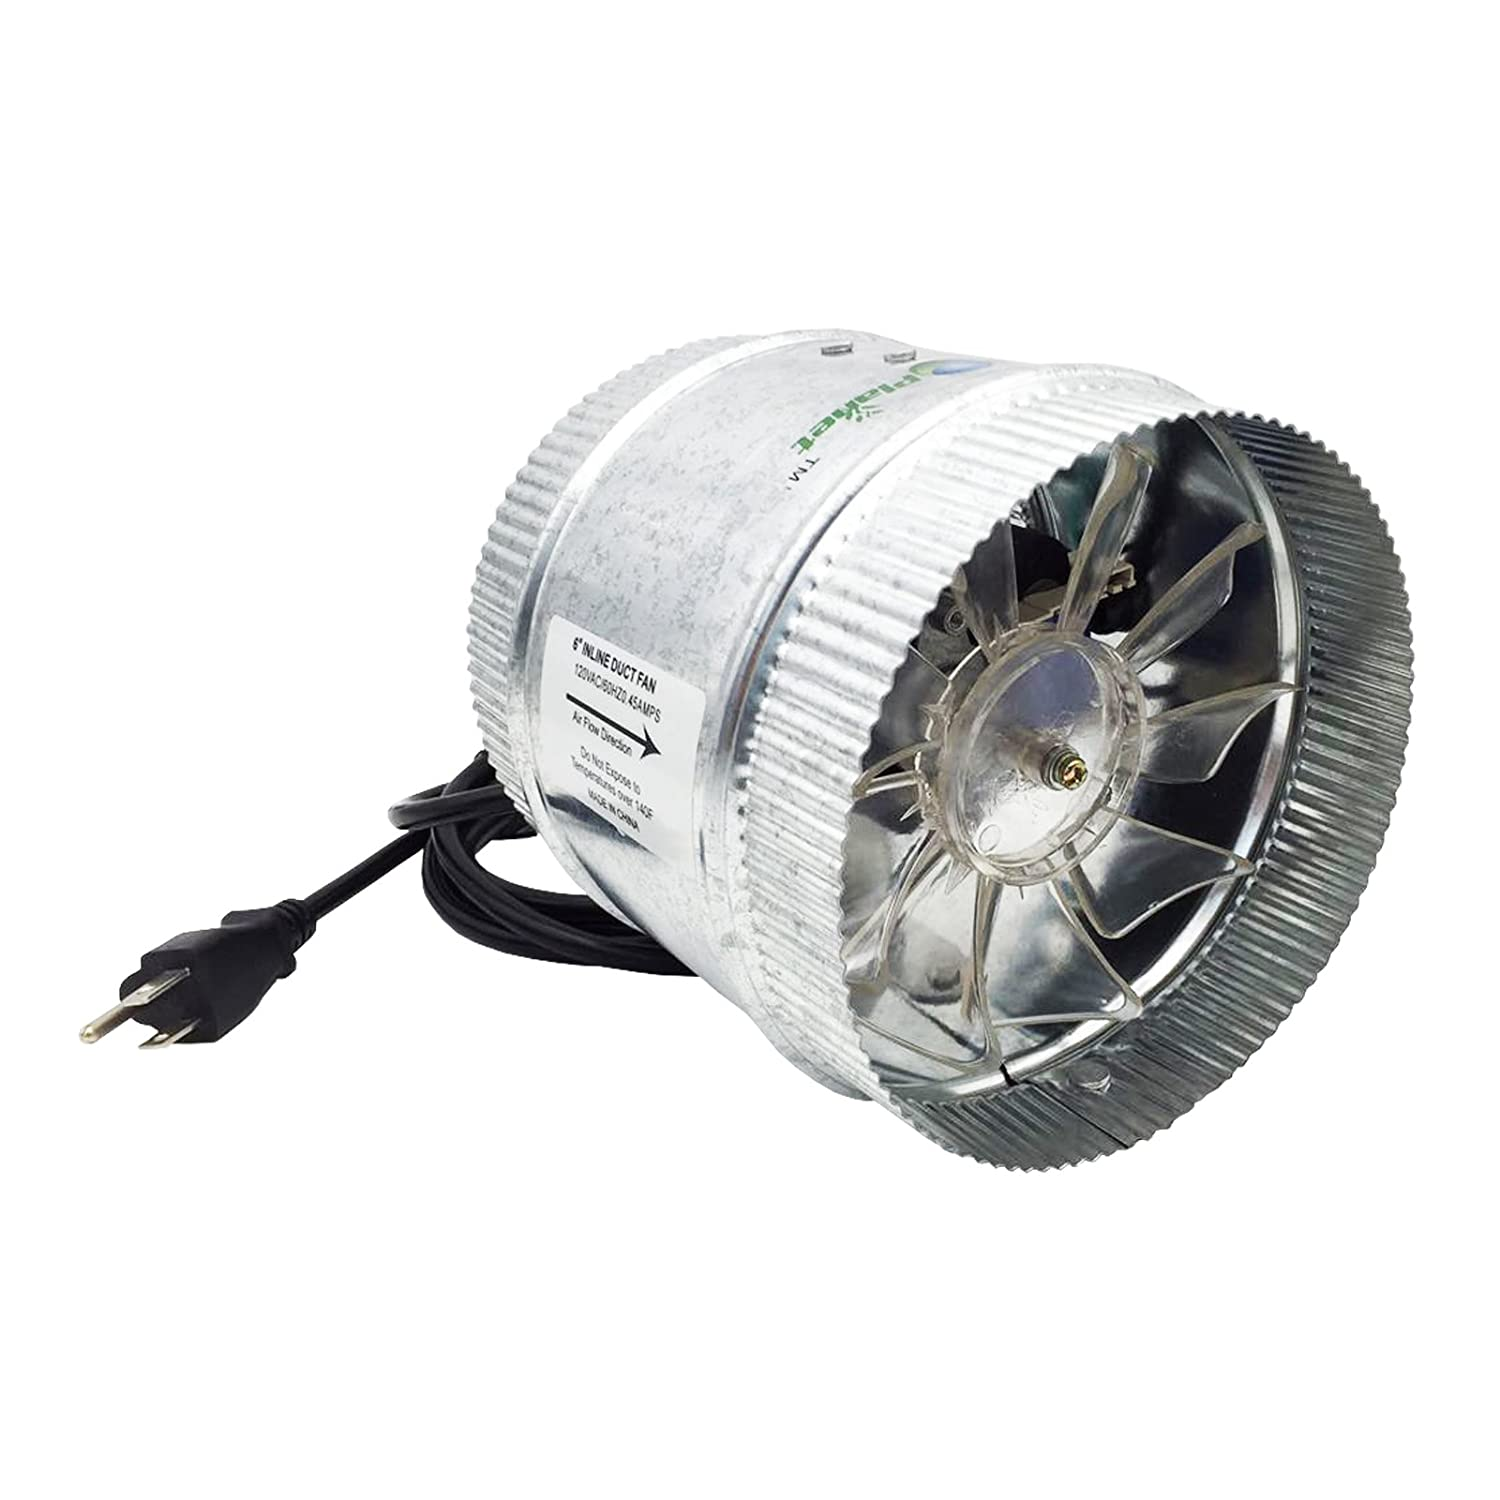 Duct Booster Fan : Hydroplanet duct booster exhaust fan inch cfm ebay